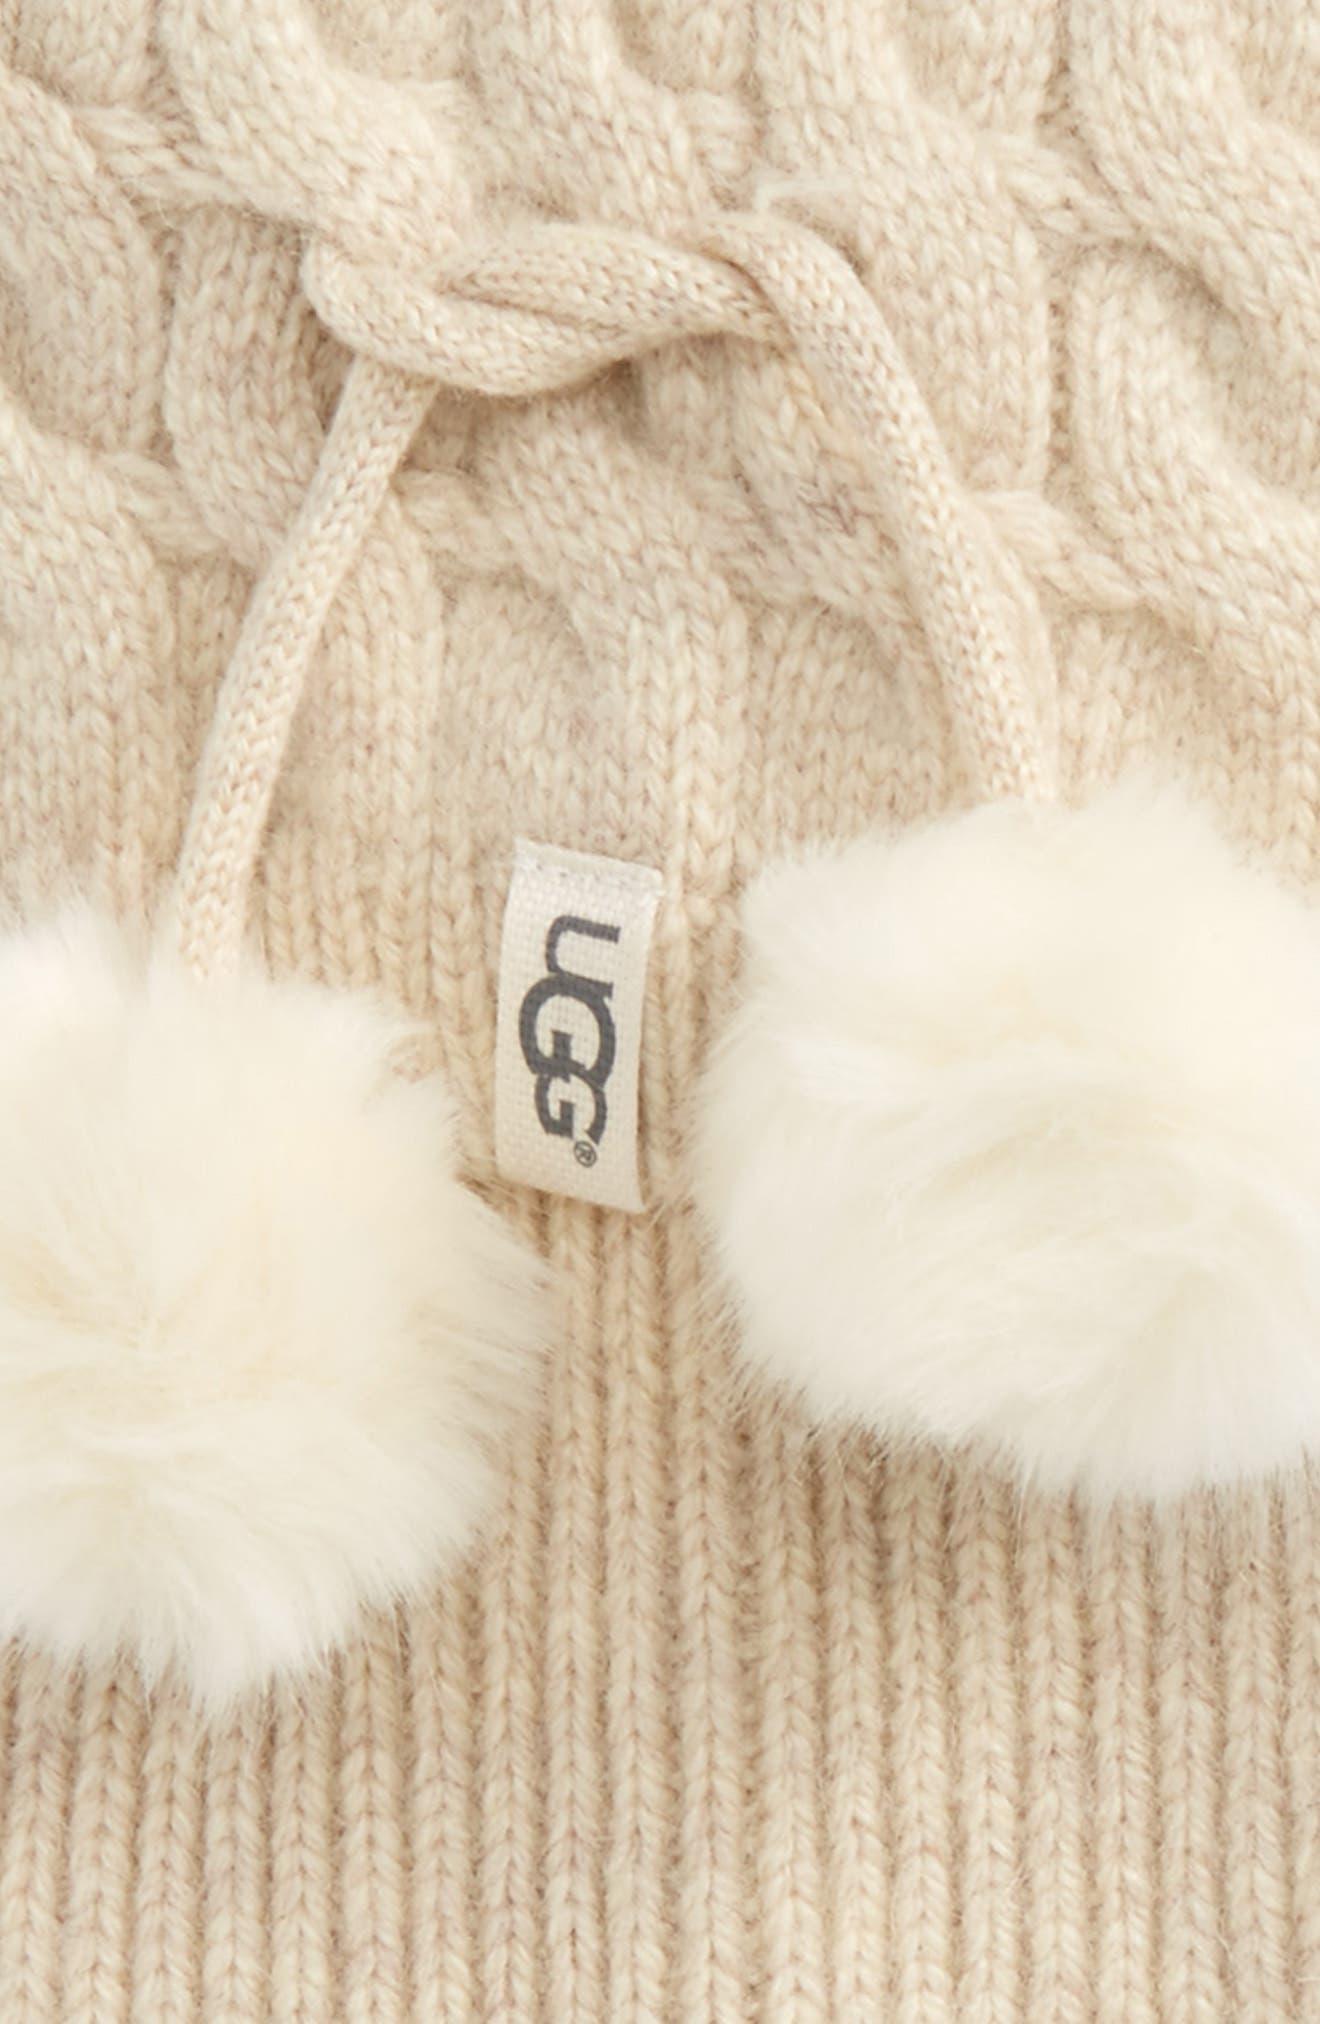 UGG UGGpure<sup>™</sup> Pompom Tall Rain Boot Sock,                             Alternate thumbnail 2, color,                             Cream Heather Wool